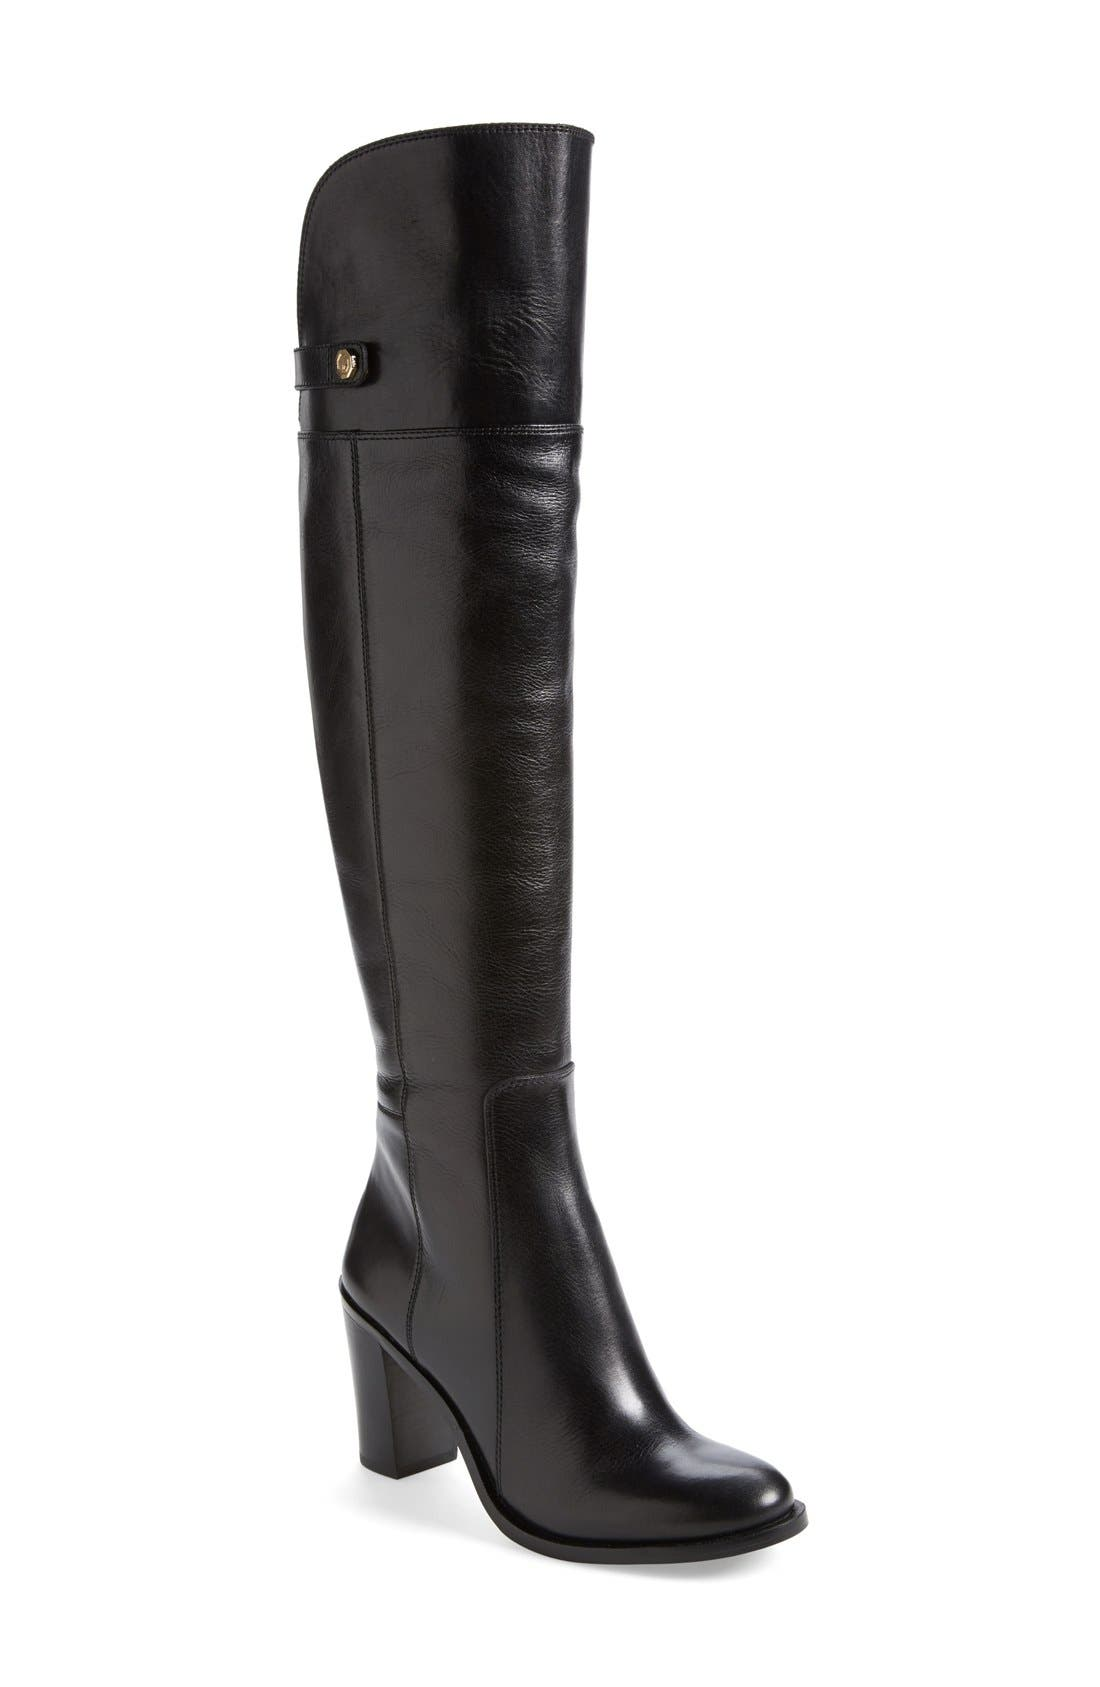 Main Image - Louise et Cie 'Navaria' Over the Knee Leather Boot (Women)